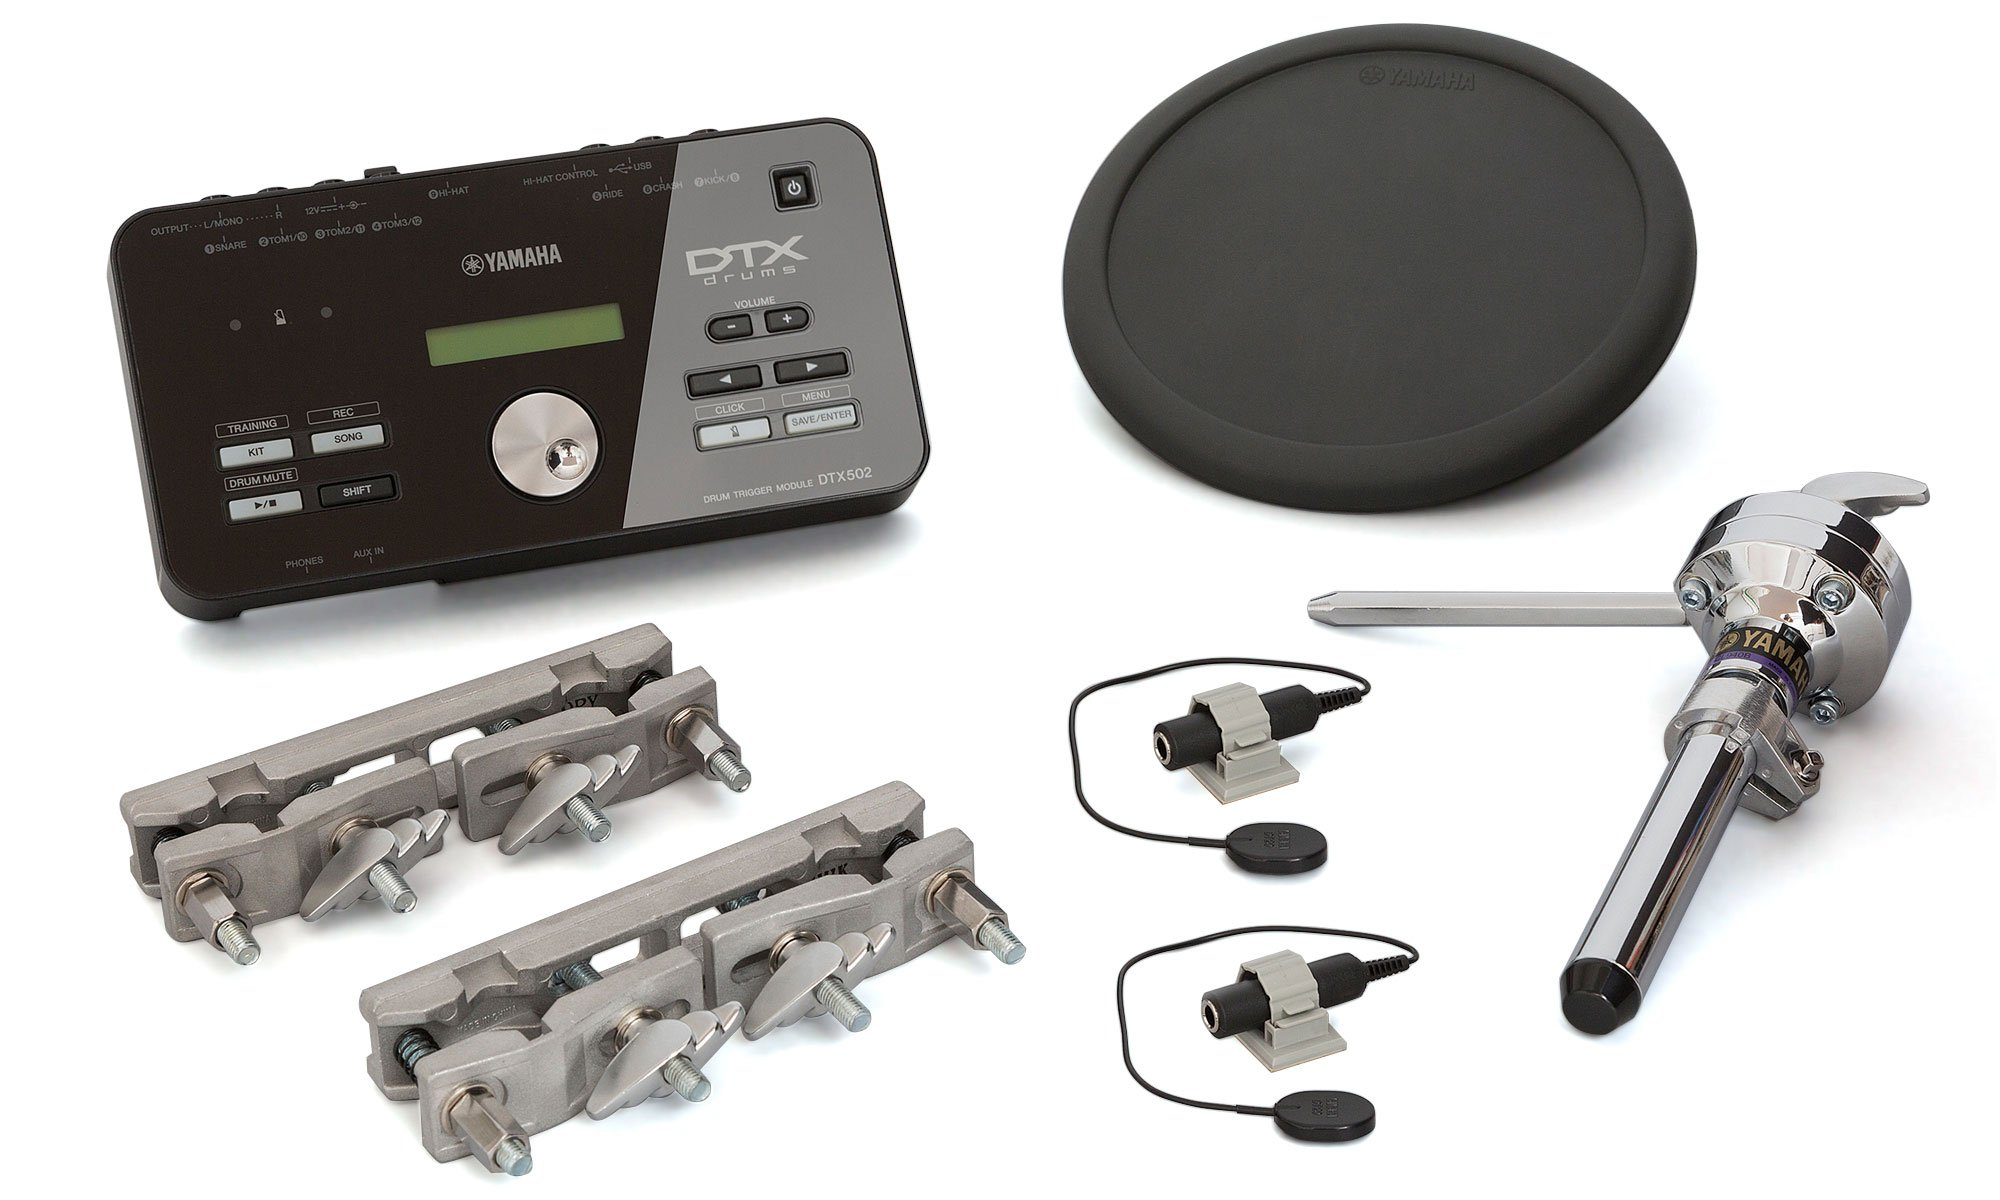 Yamaha DTX Hybrid Electronic Drum Pack with DTX502 Module, TP70 Drum Pad, Triggers and Mounts